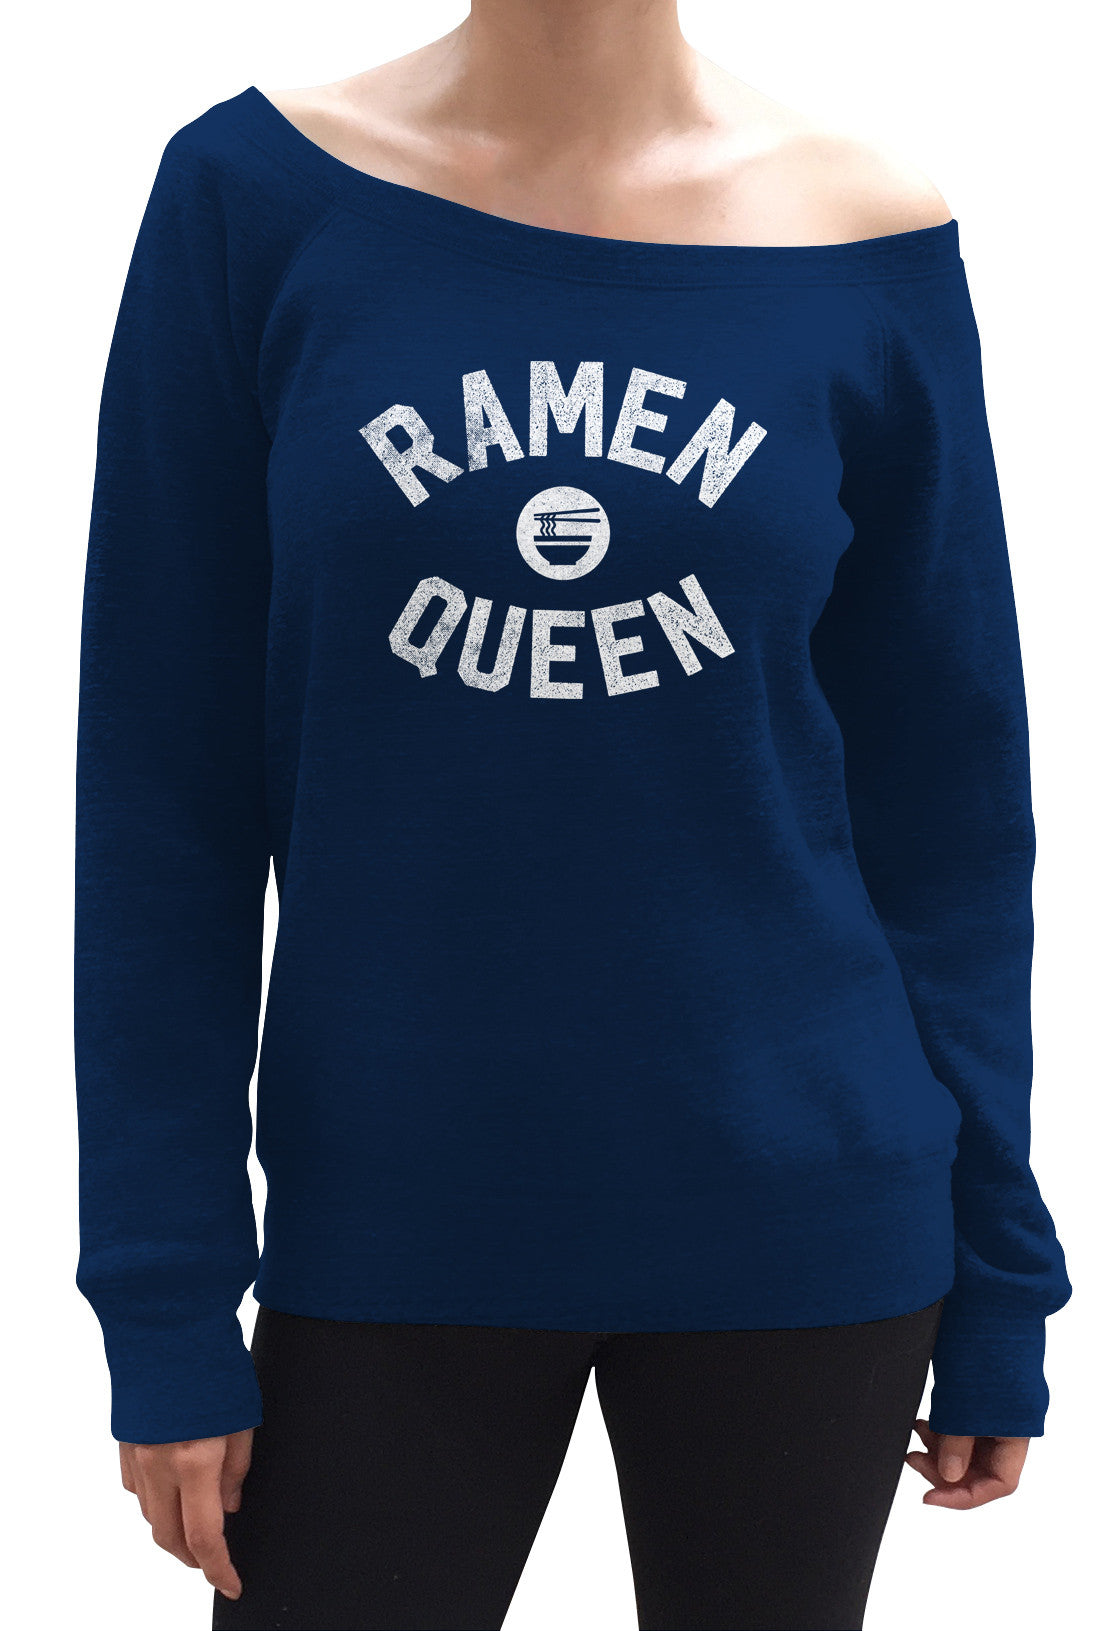 Women's Ramen Queen Scoop Neck Fleece - Funny Hipster Foodie